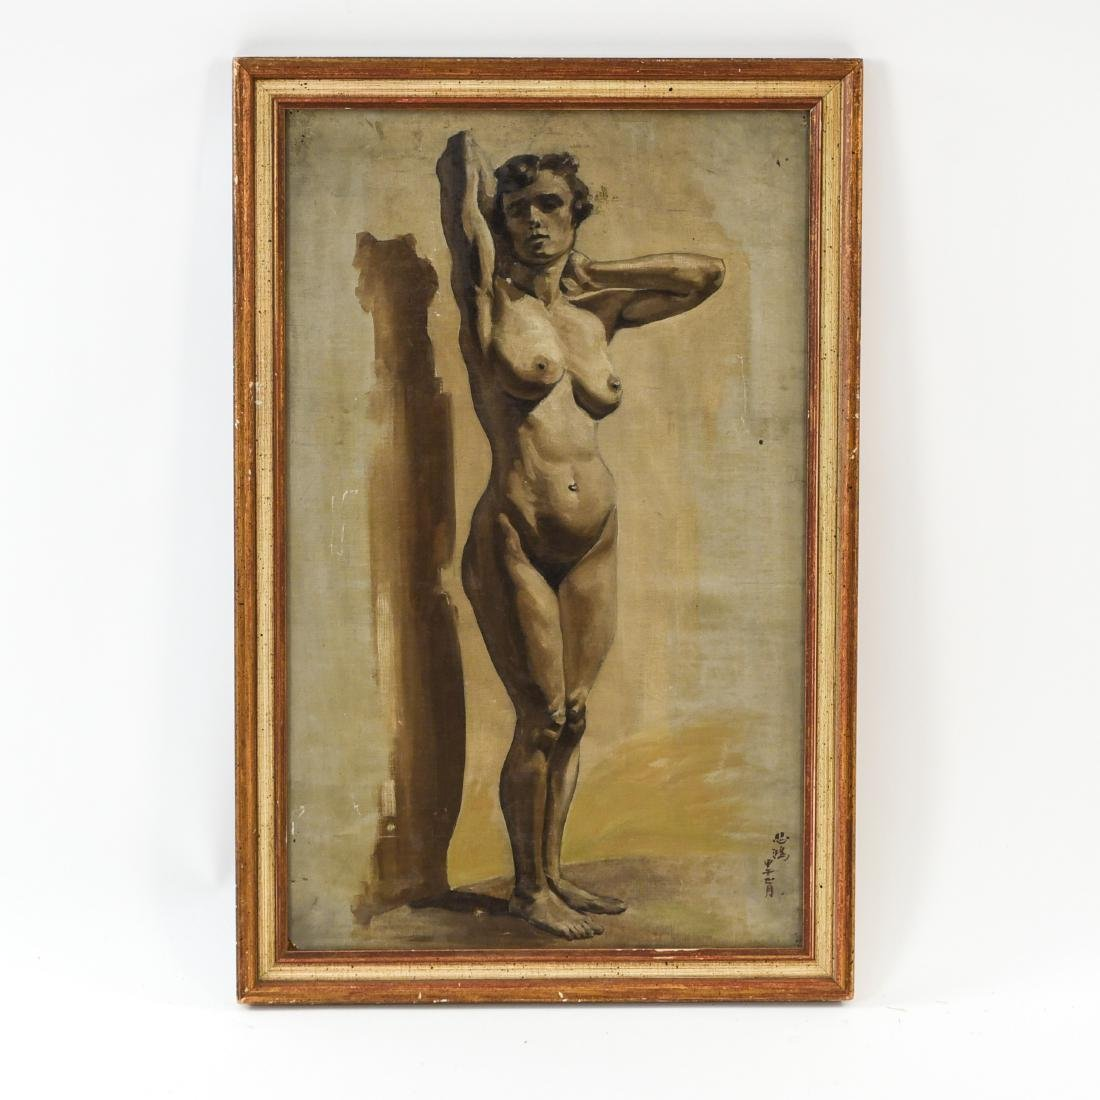 CHINESE ARTIST NUDE OIL ON BOARD PAINTING